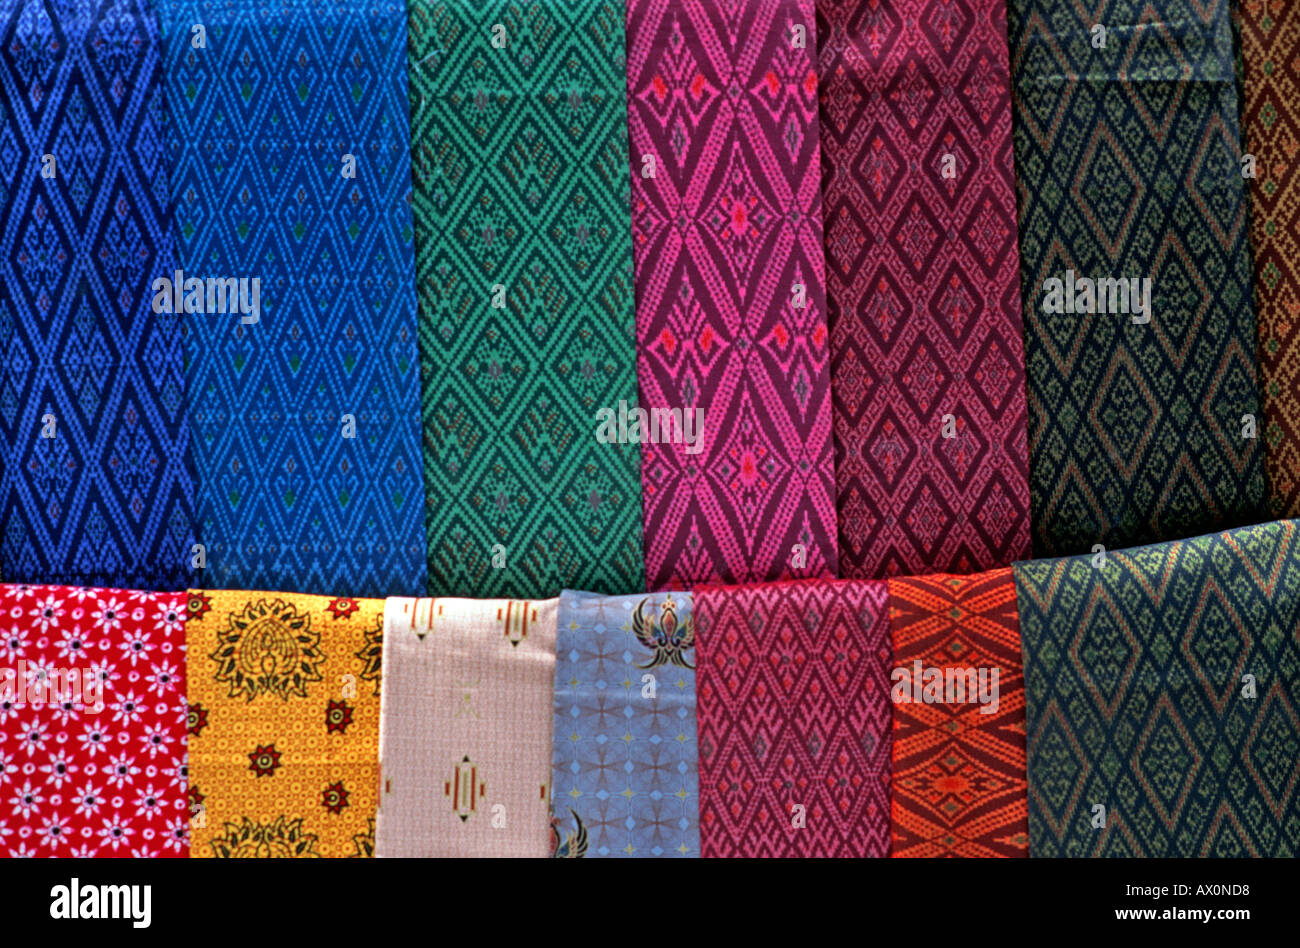 A selection of hand woven ikat patterned fabrics for sale on a stall Angkor town Siem Reap Cambodia - Stock Image